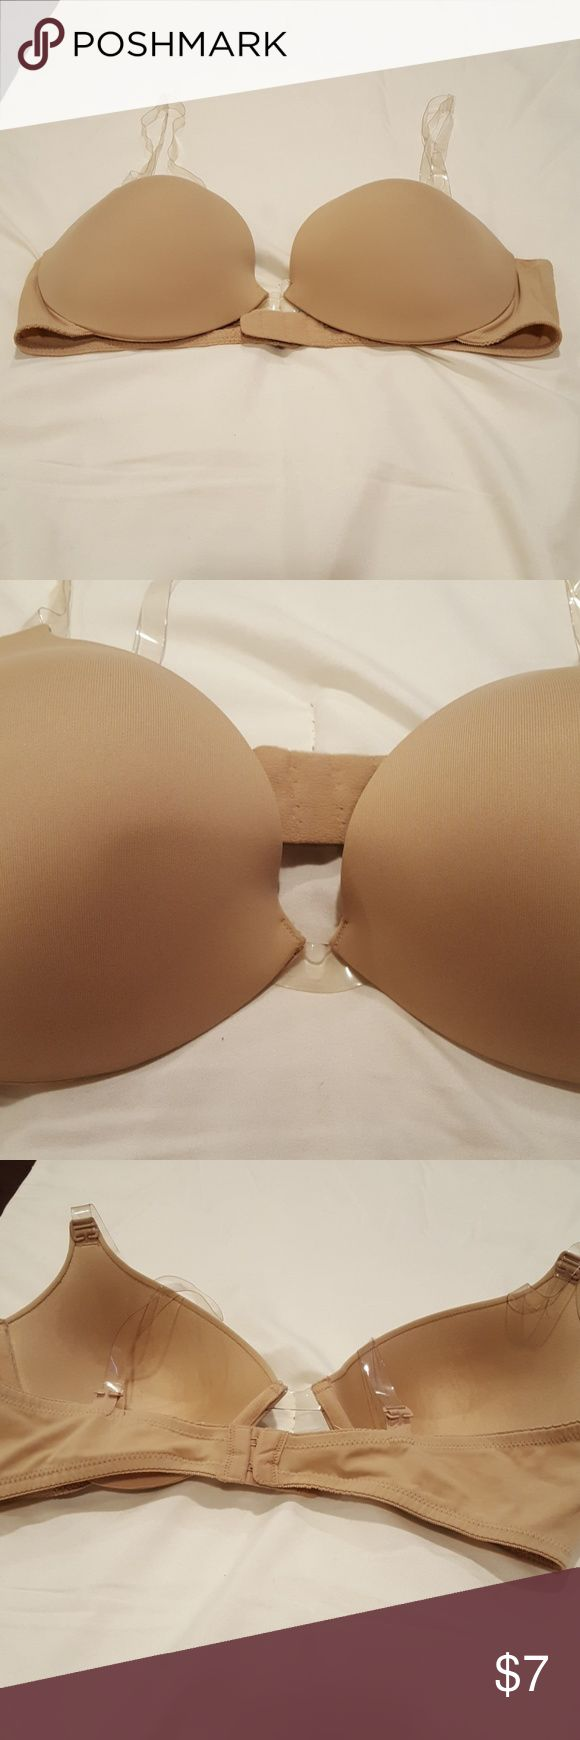 Sweet Nothings bra with clear straps.  Size 38C Sweet Nothings bra beige with clear strap and underwire.  Size 38C.excellent pre owned condition Sweet Nothings Intimates & Sleepwear Bras